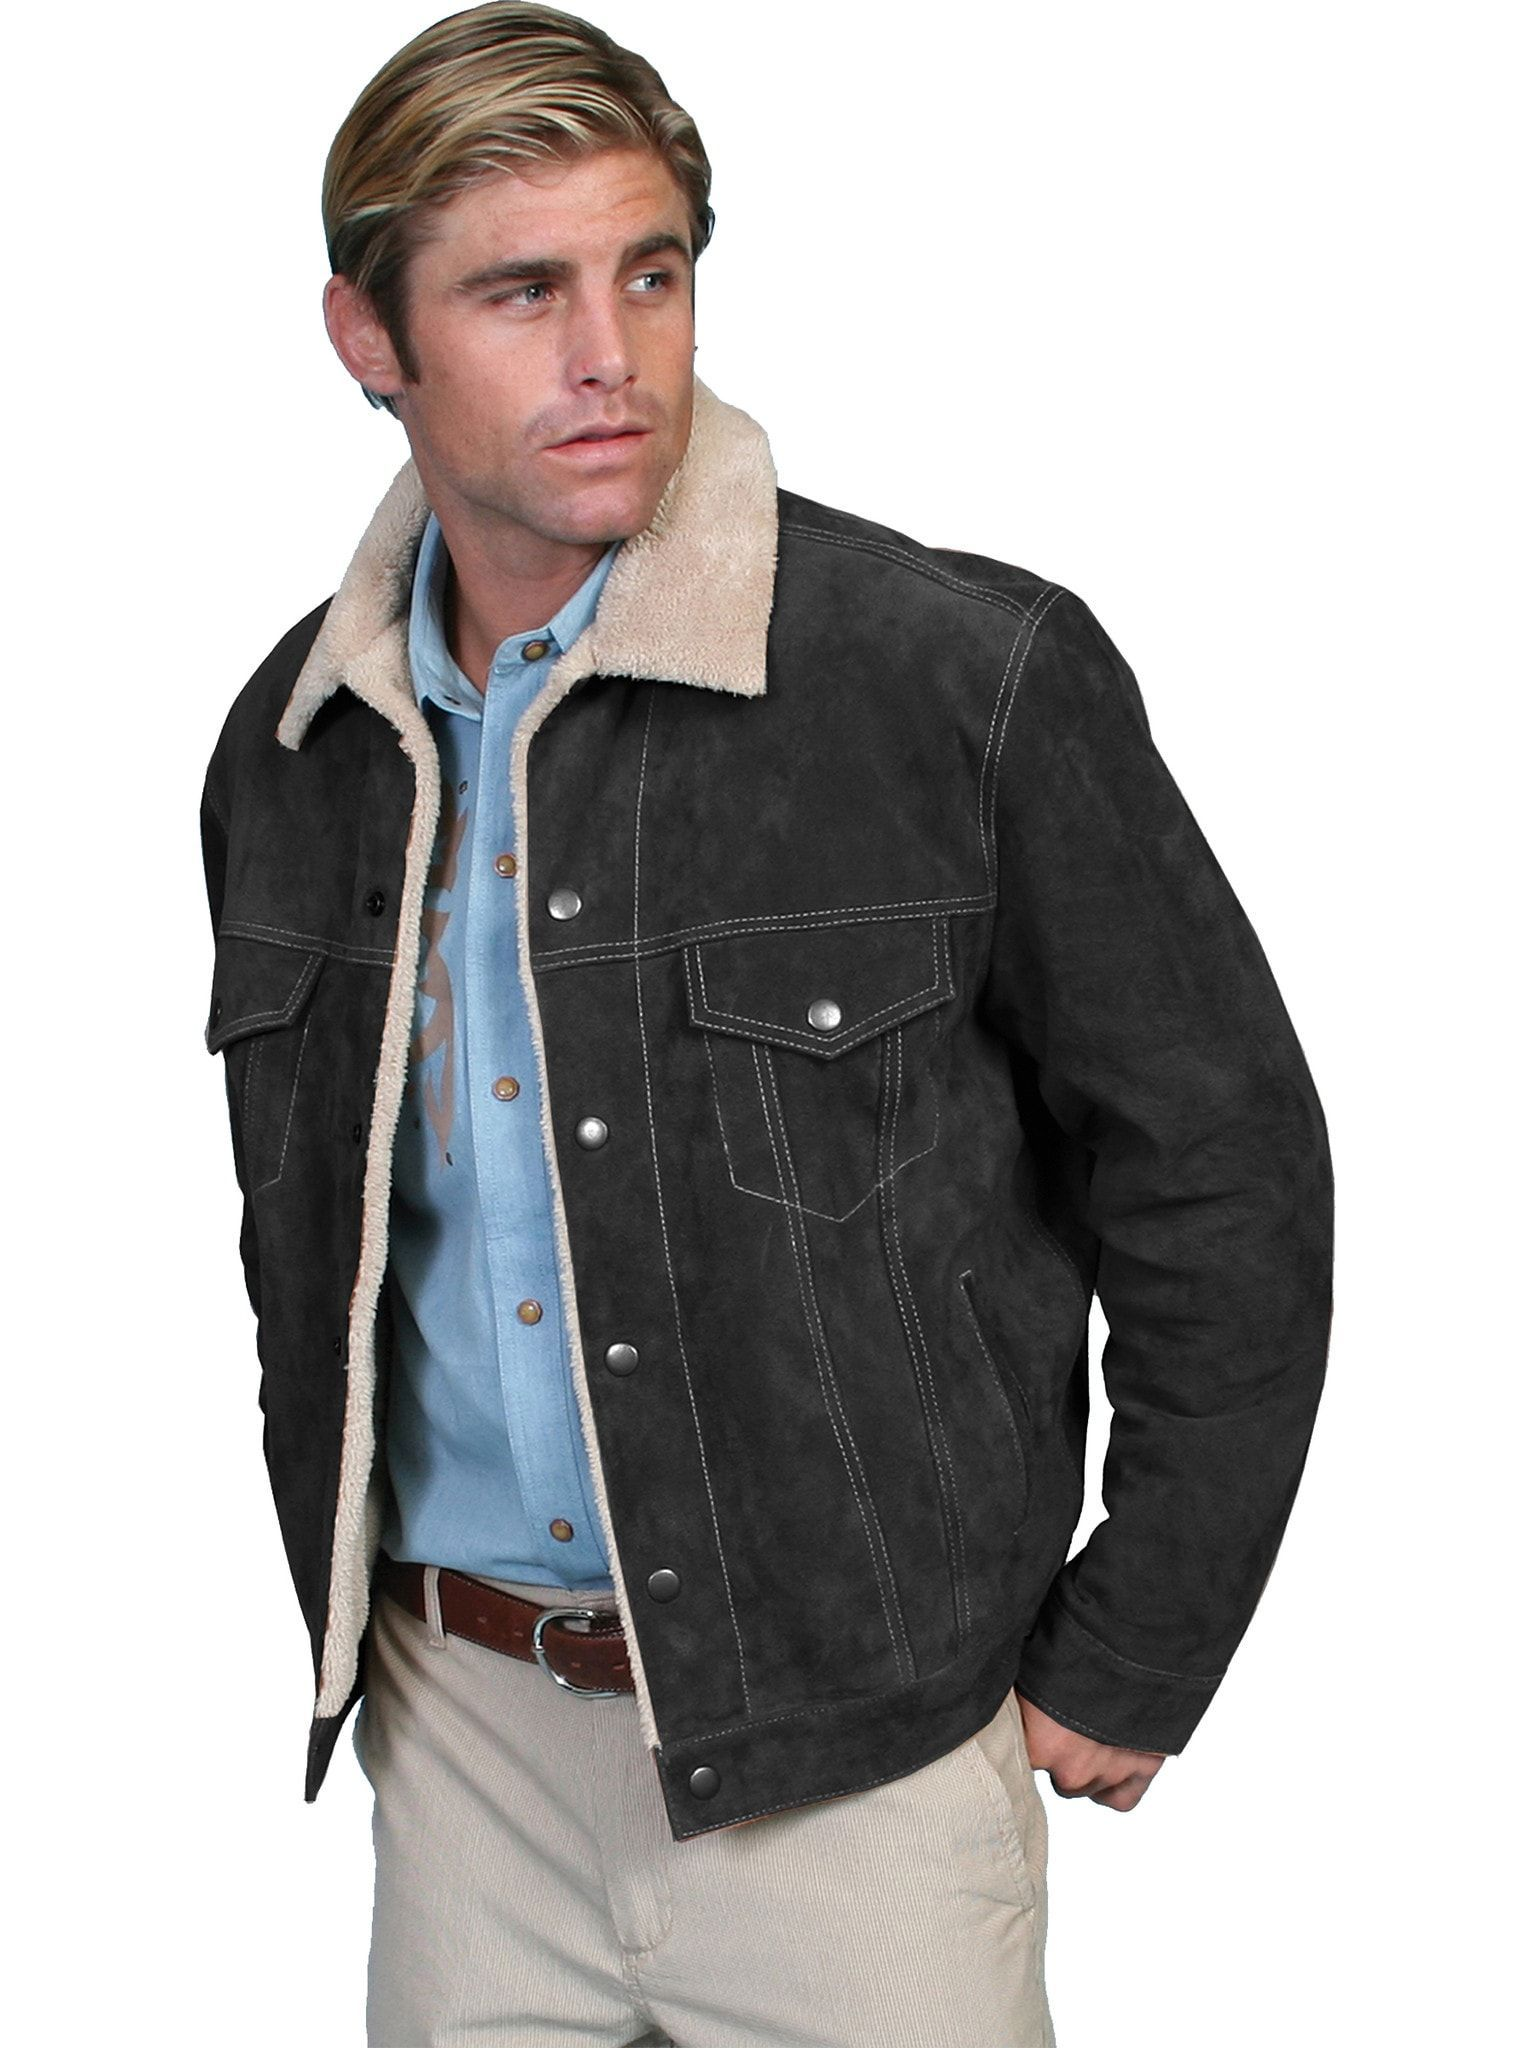 (1) FLAVOR New Men's Real Leather Bomber Jacket with